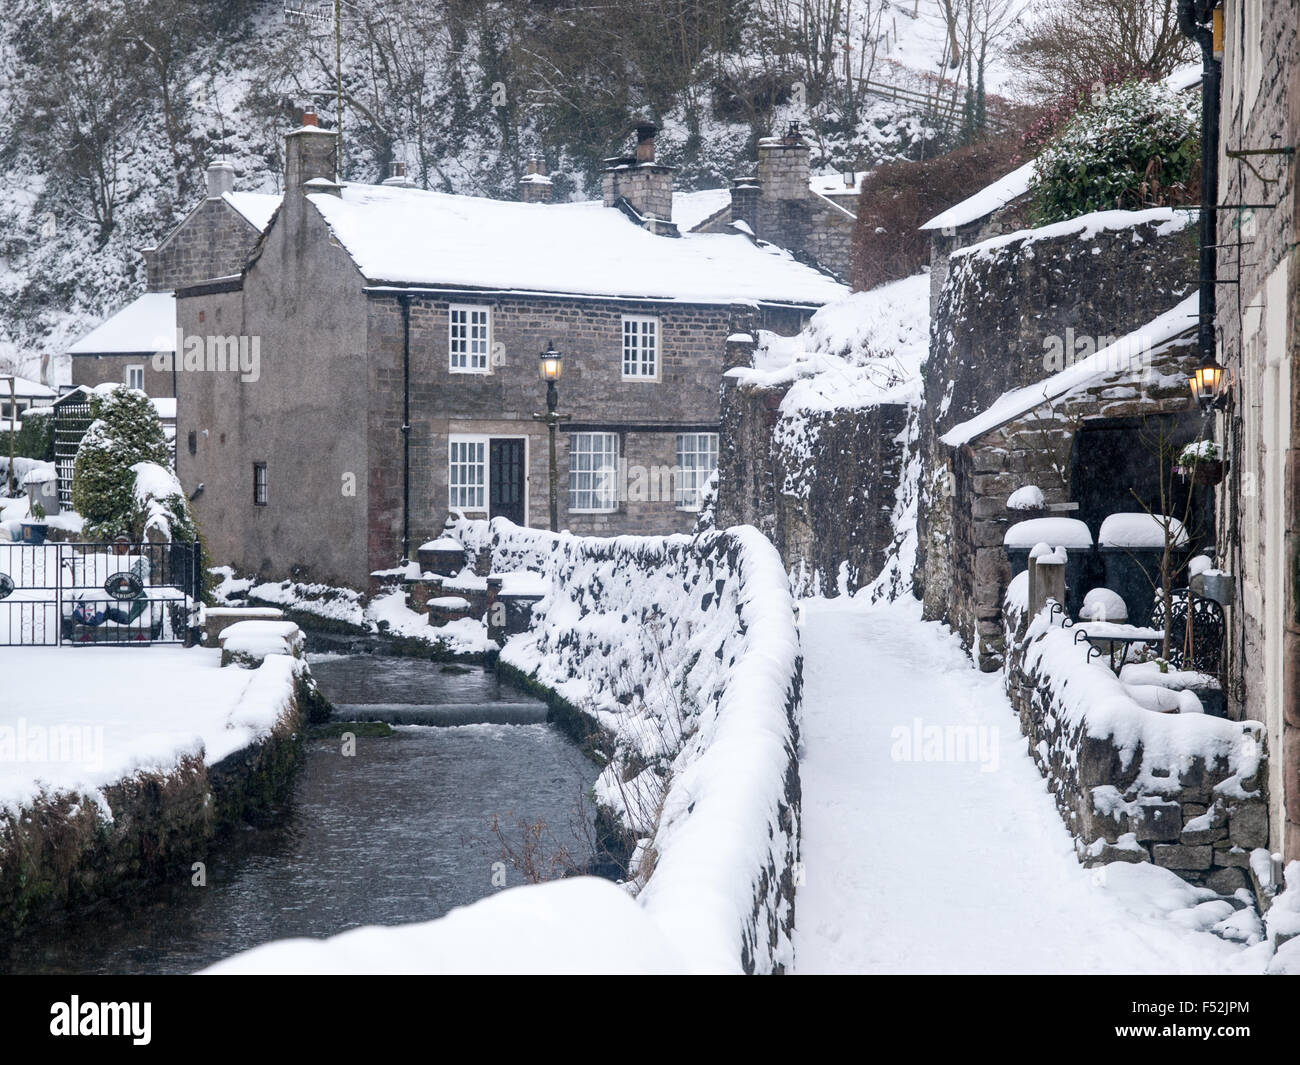 castleton village in the hope valley, derbyshire, in winter stock